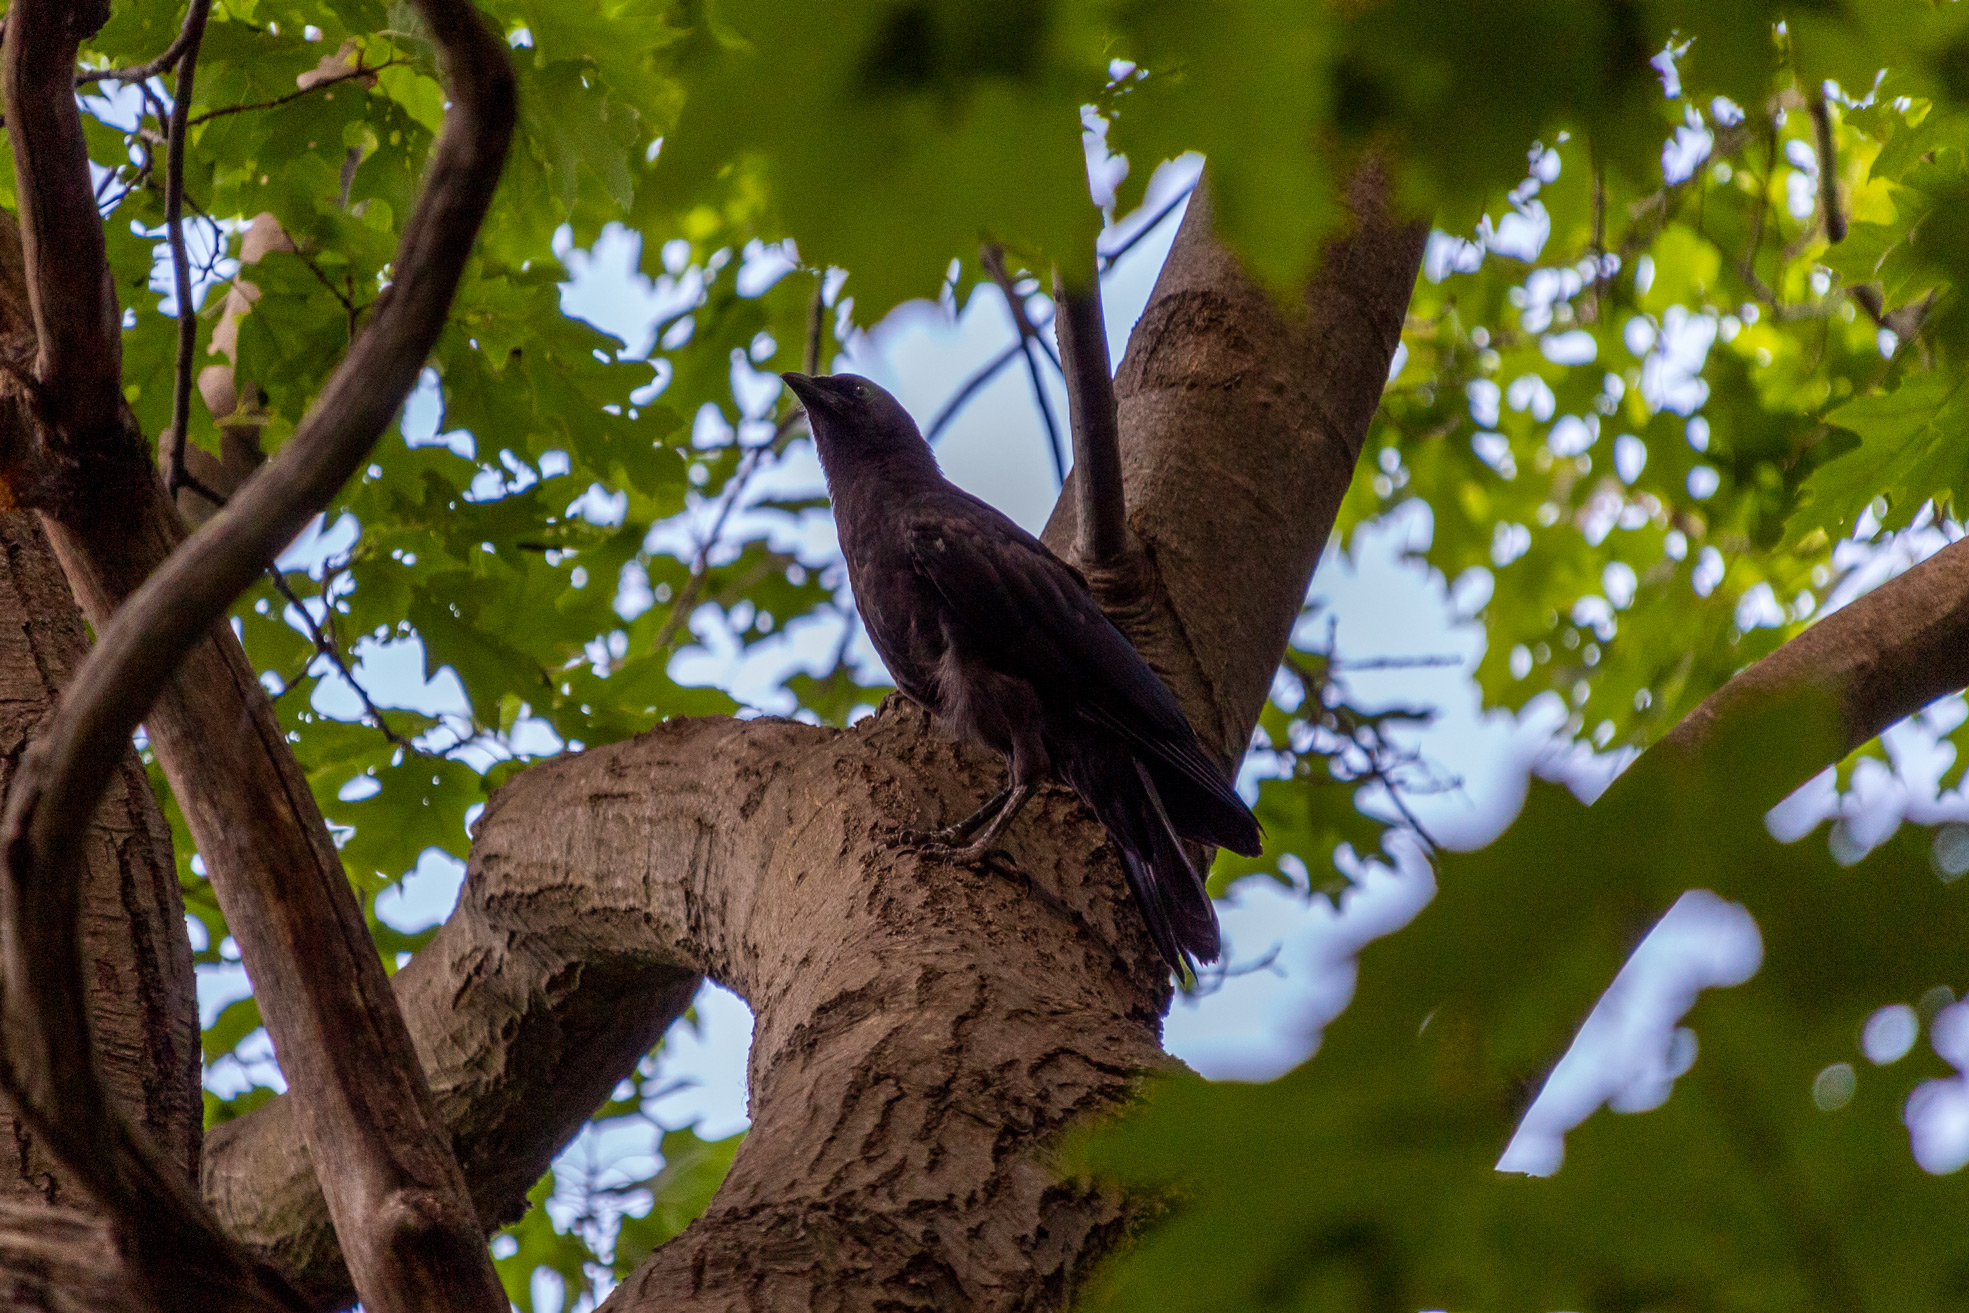 Crow standing on a tree brach looking magnificent